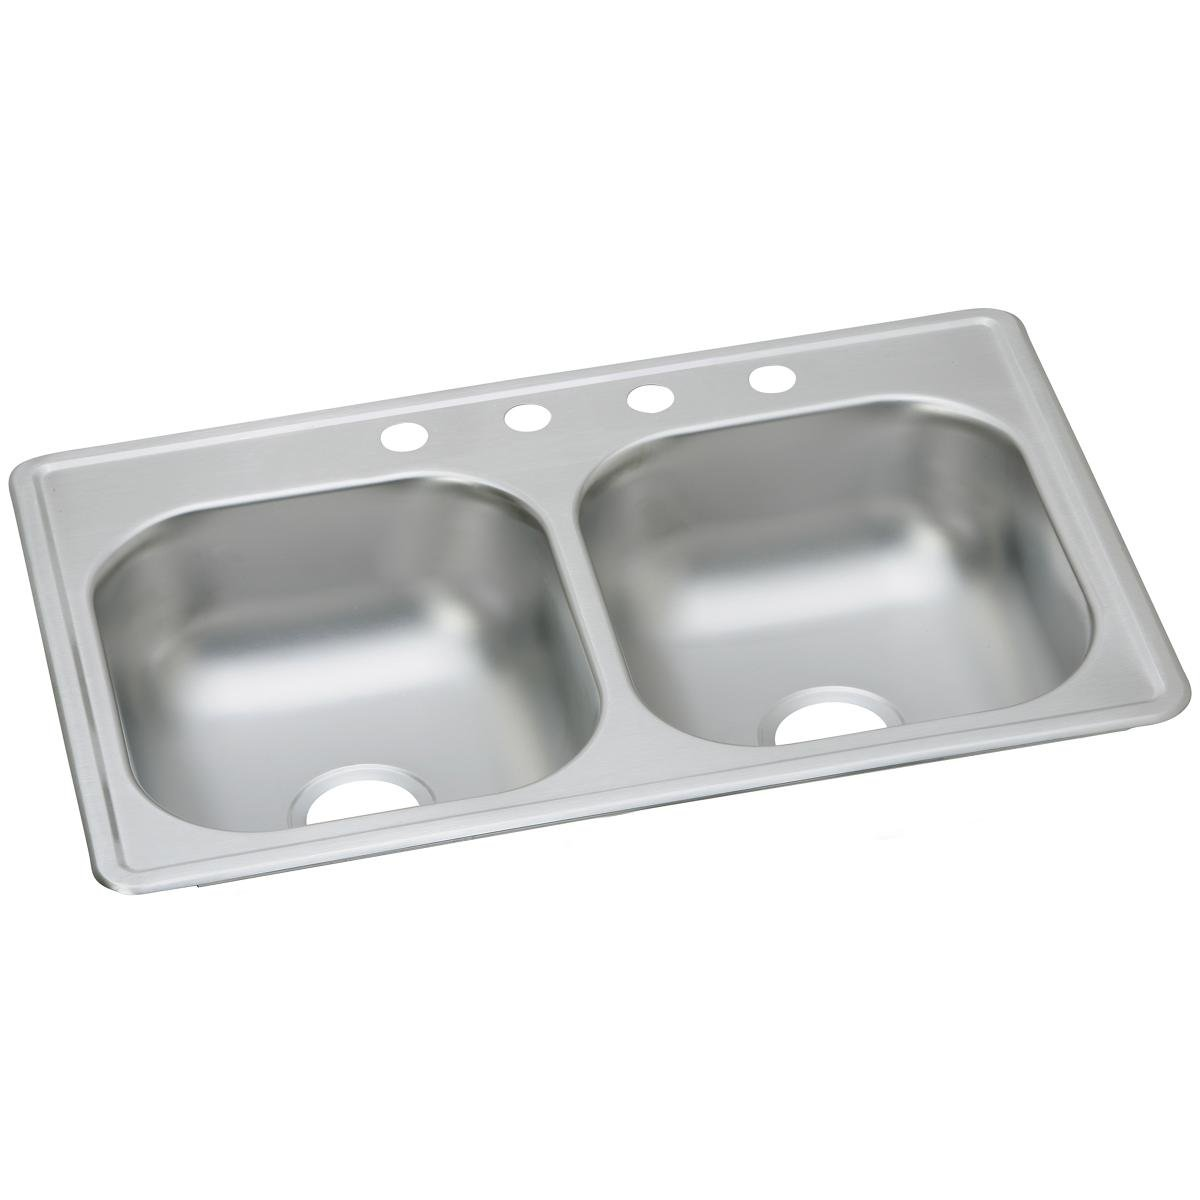 Dayton D233193 Equal Double Bowl Top Mount Stainless Steel Sink